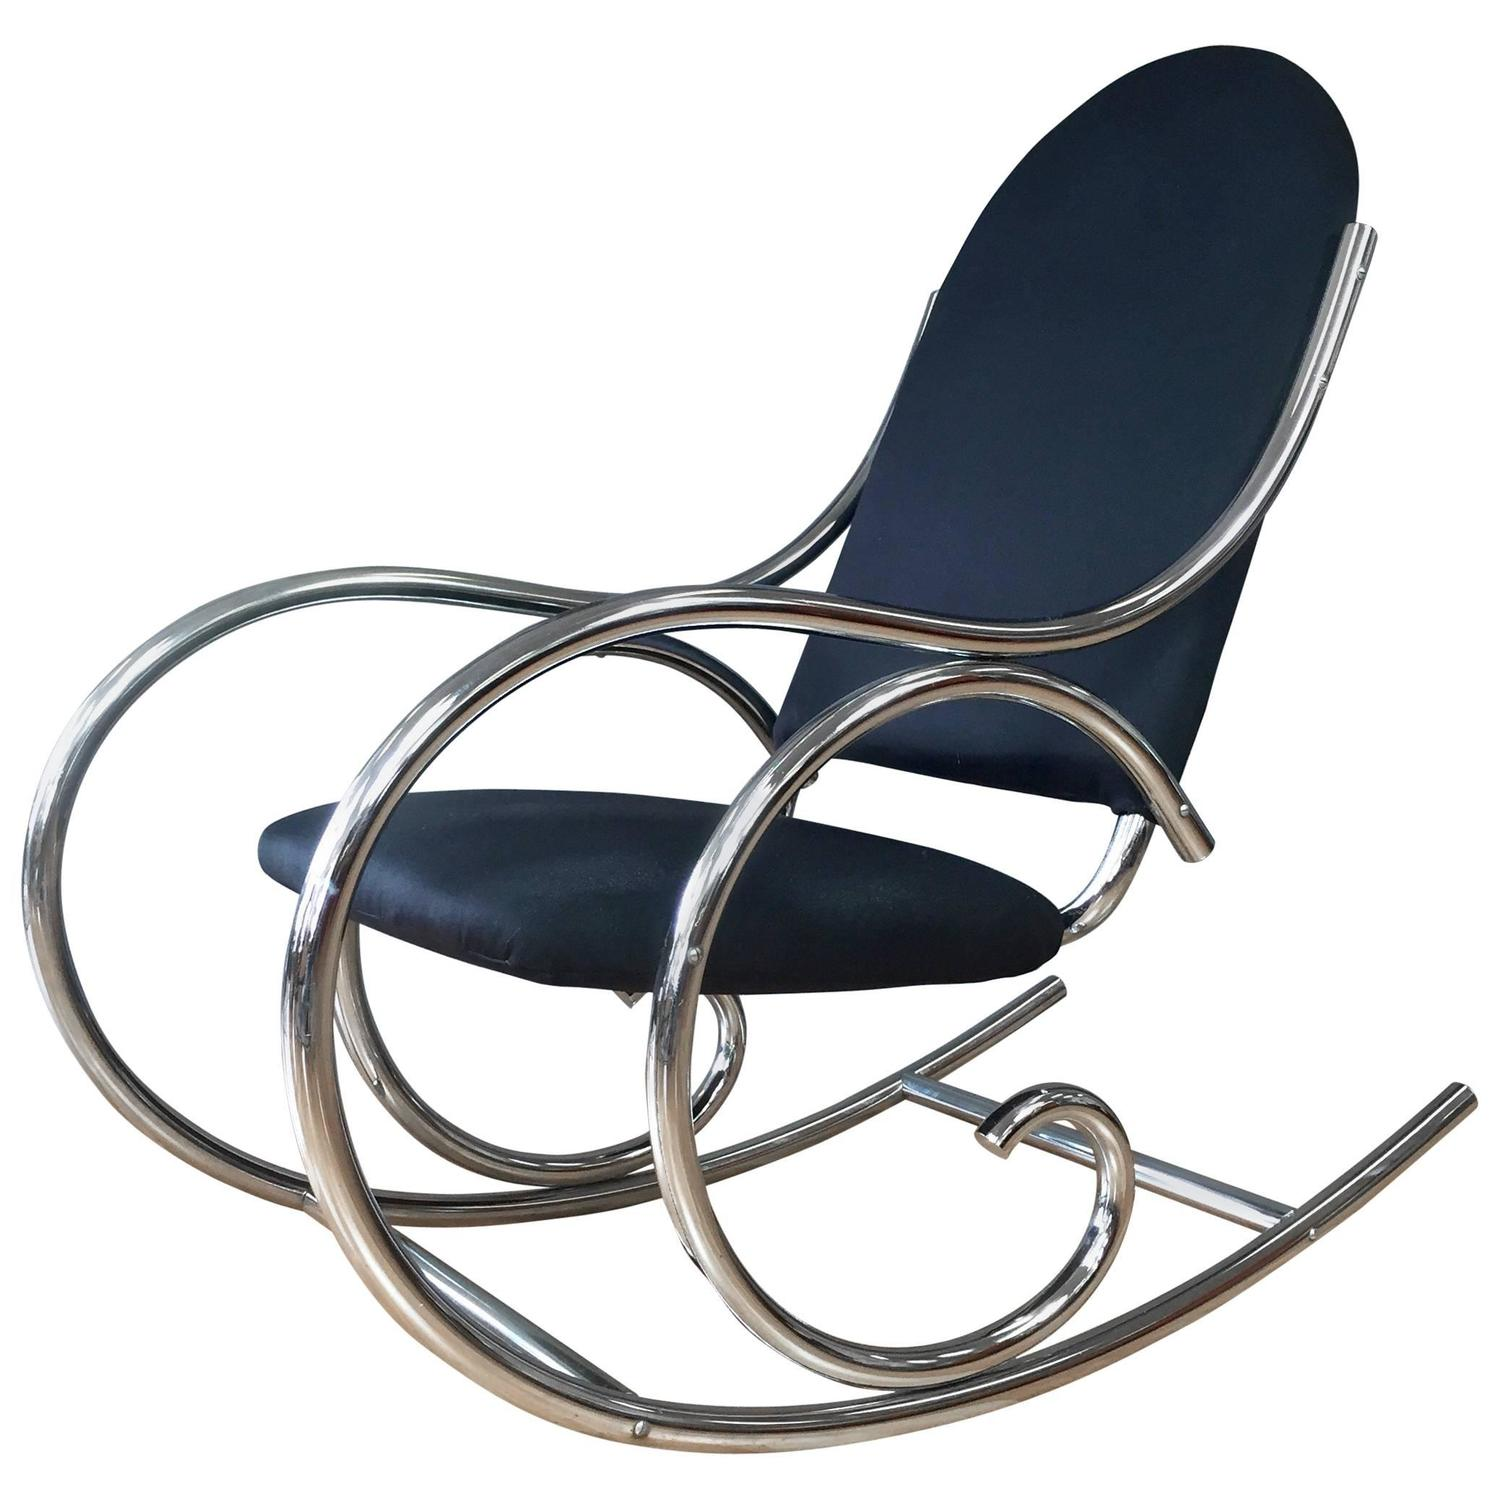 Original white painted bentwood rocking chair is no longer available - Curvaceous Upholstered Chrome Rocking Chair In The Style Of Thonet